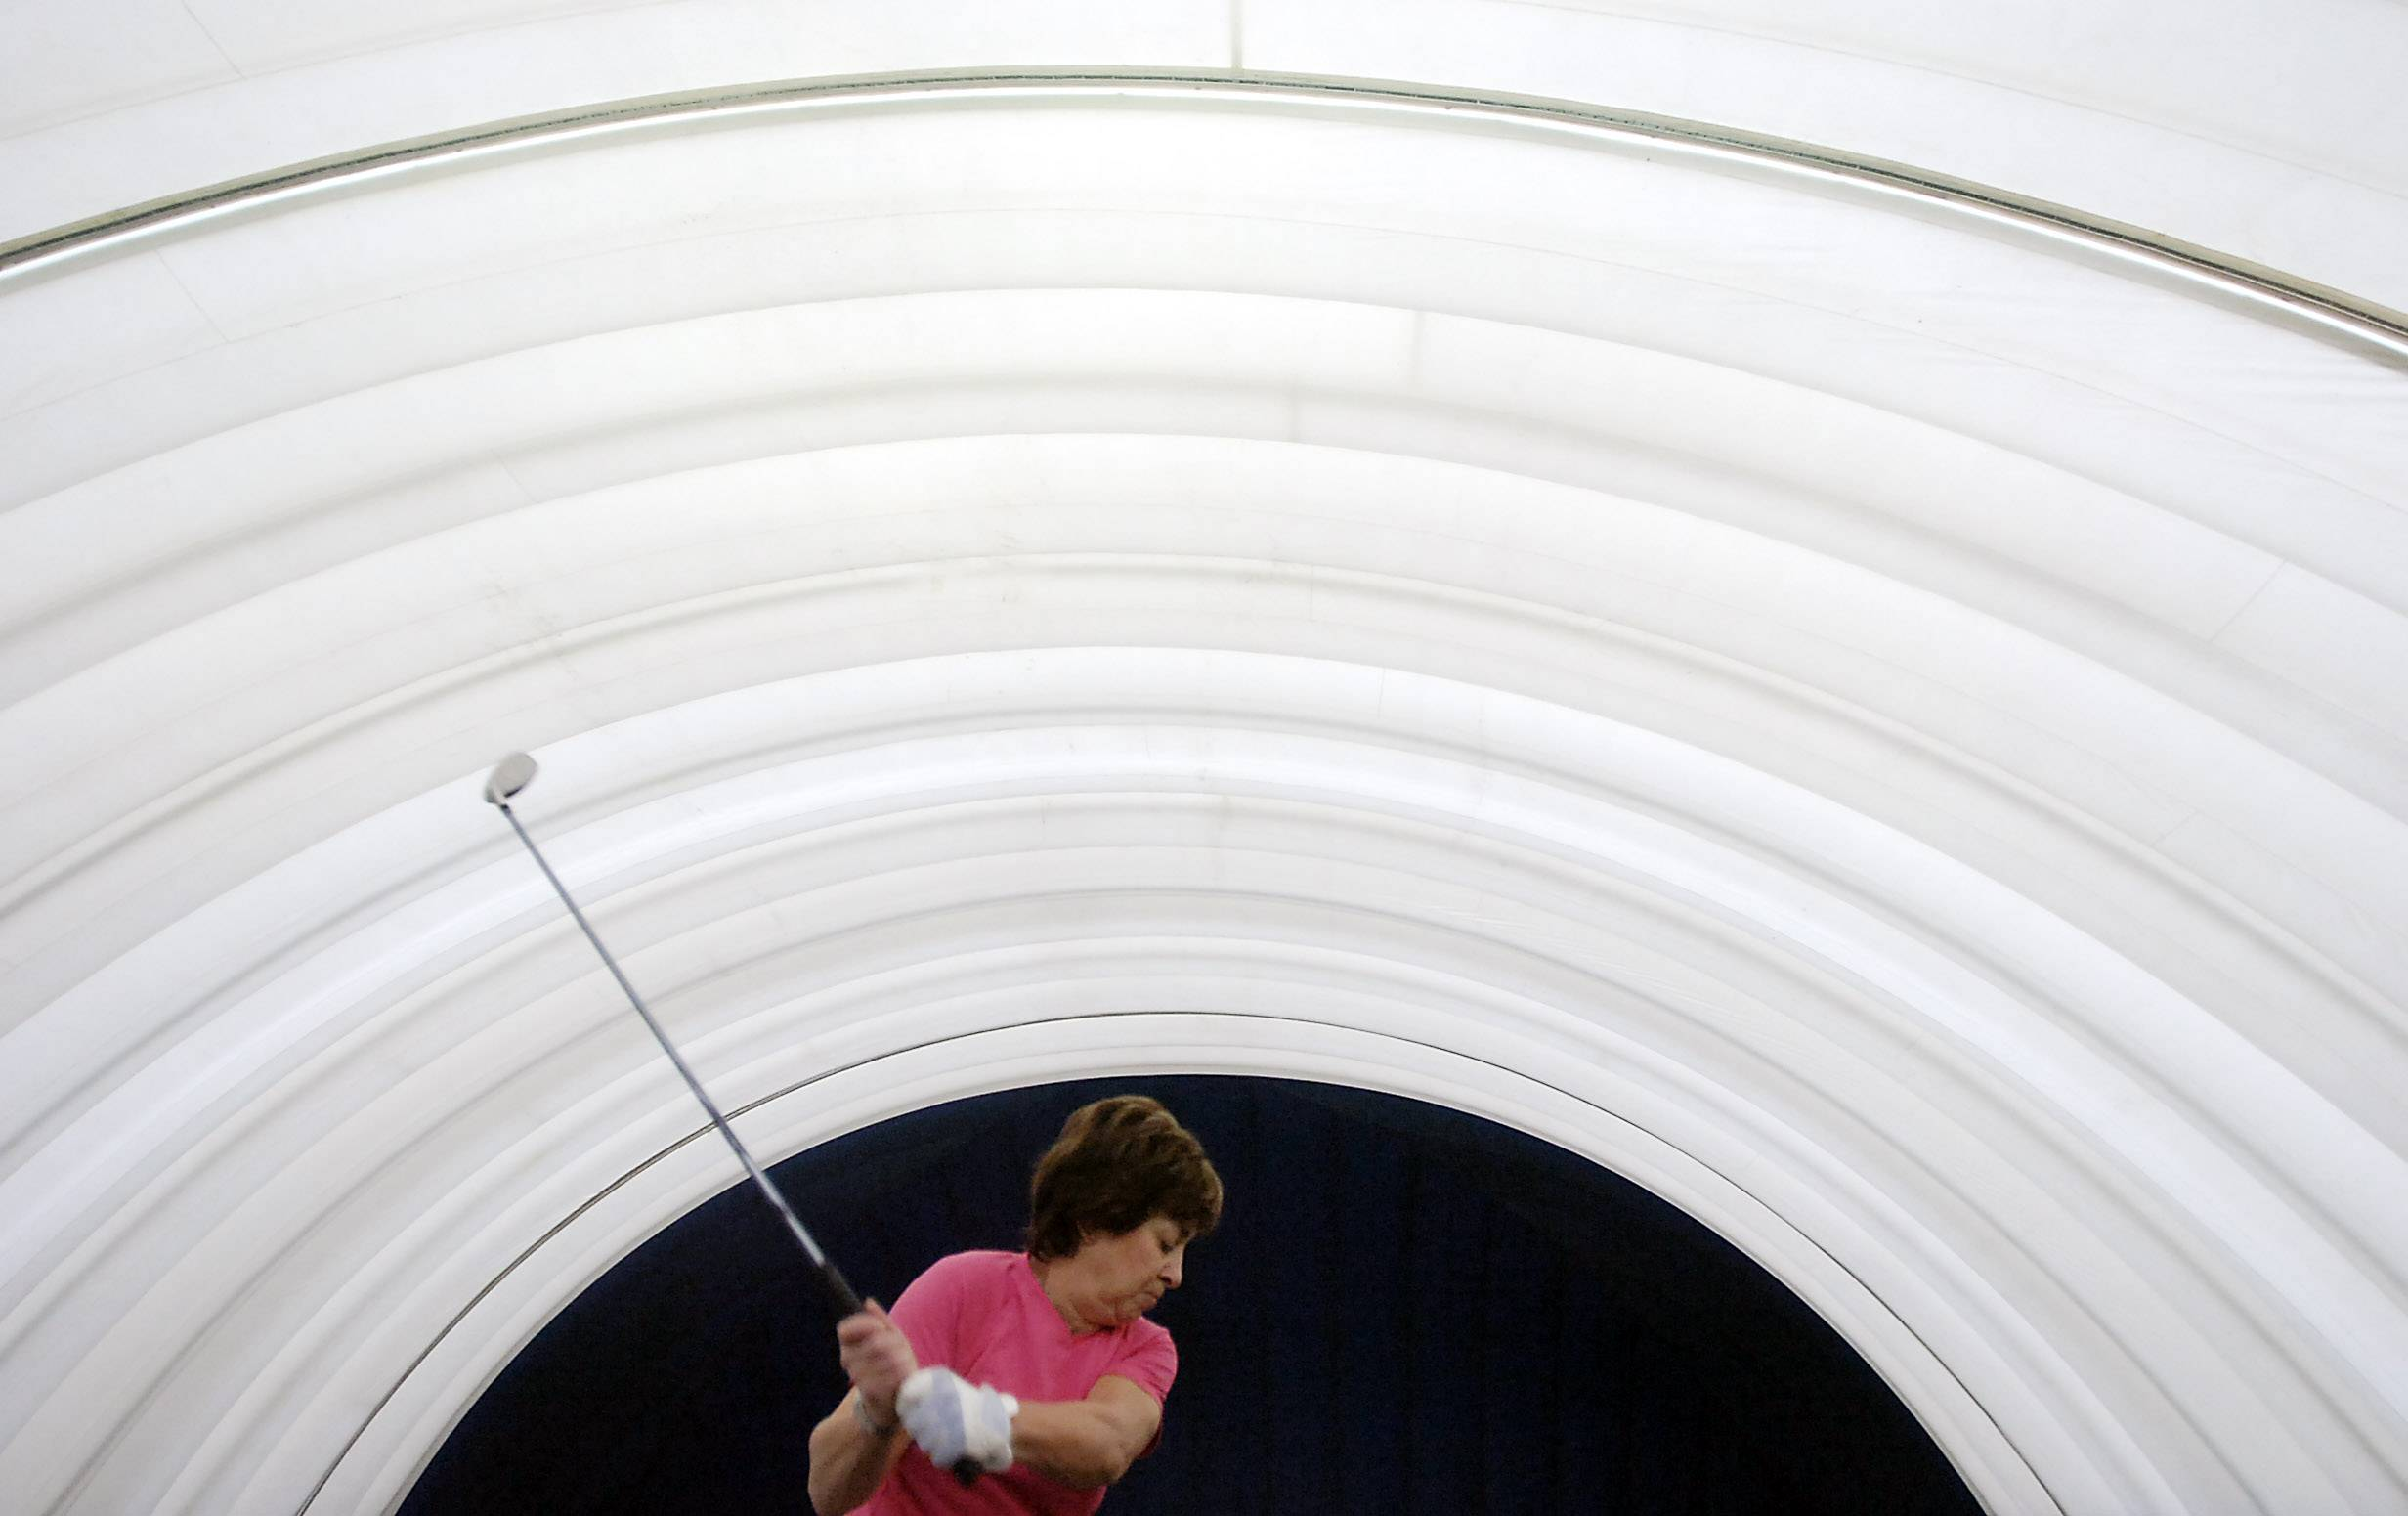 MARK WELSH/mwelsh@dailyherald.com, 2009 The Buffalo Grove Park District is planning major renovations for its 15-year-old golf dome, including a new heating system and possible new exterior. Officials say the work is likely to be done in the summer or early fall, and won't disrupt normal dome operations.